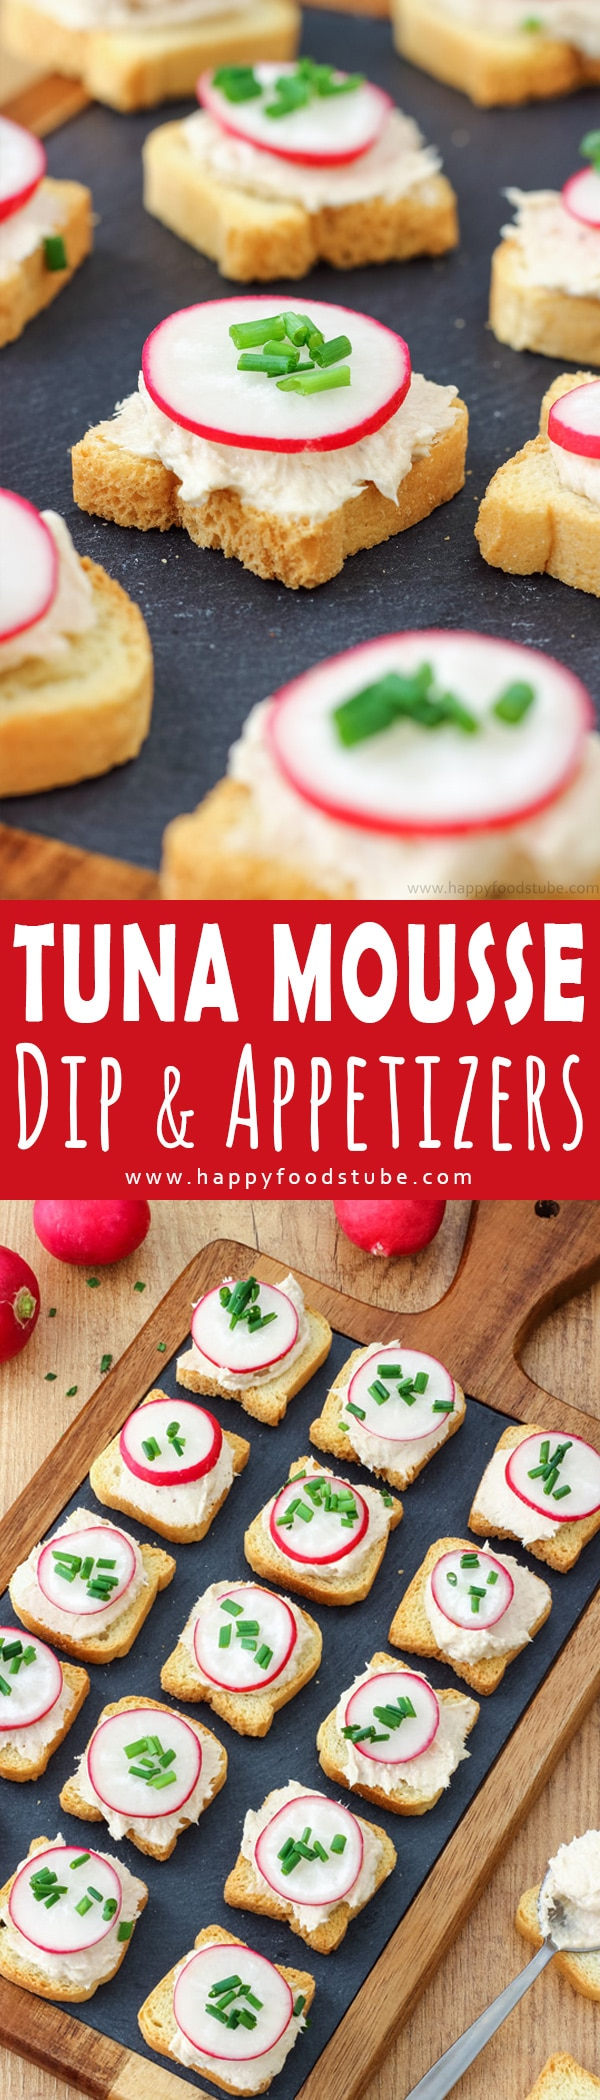 Easy to make Tuna Mousse Dip and Appetizers. Looking for easy party food ideas. This bite size tuna appetizers are quick and easy to make. Only 5 ingredients and ready in 15 minutes. How to make tuna mousse. #tuna #appetizers #dip #partyfood #fingerfood #tunadip #bitesize #canapes